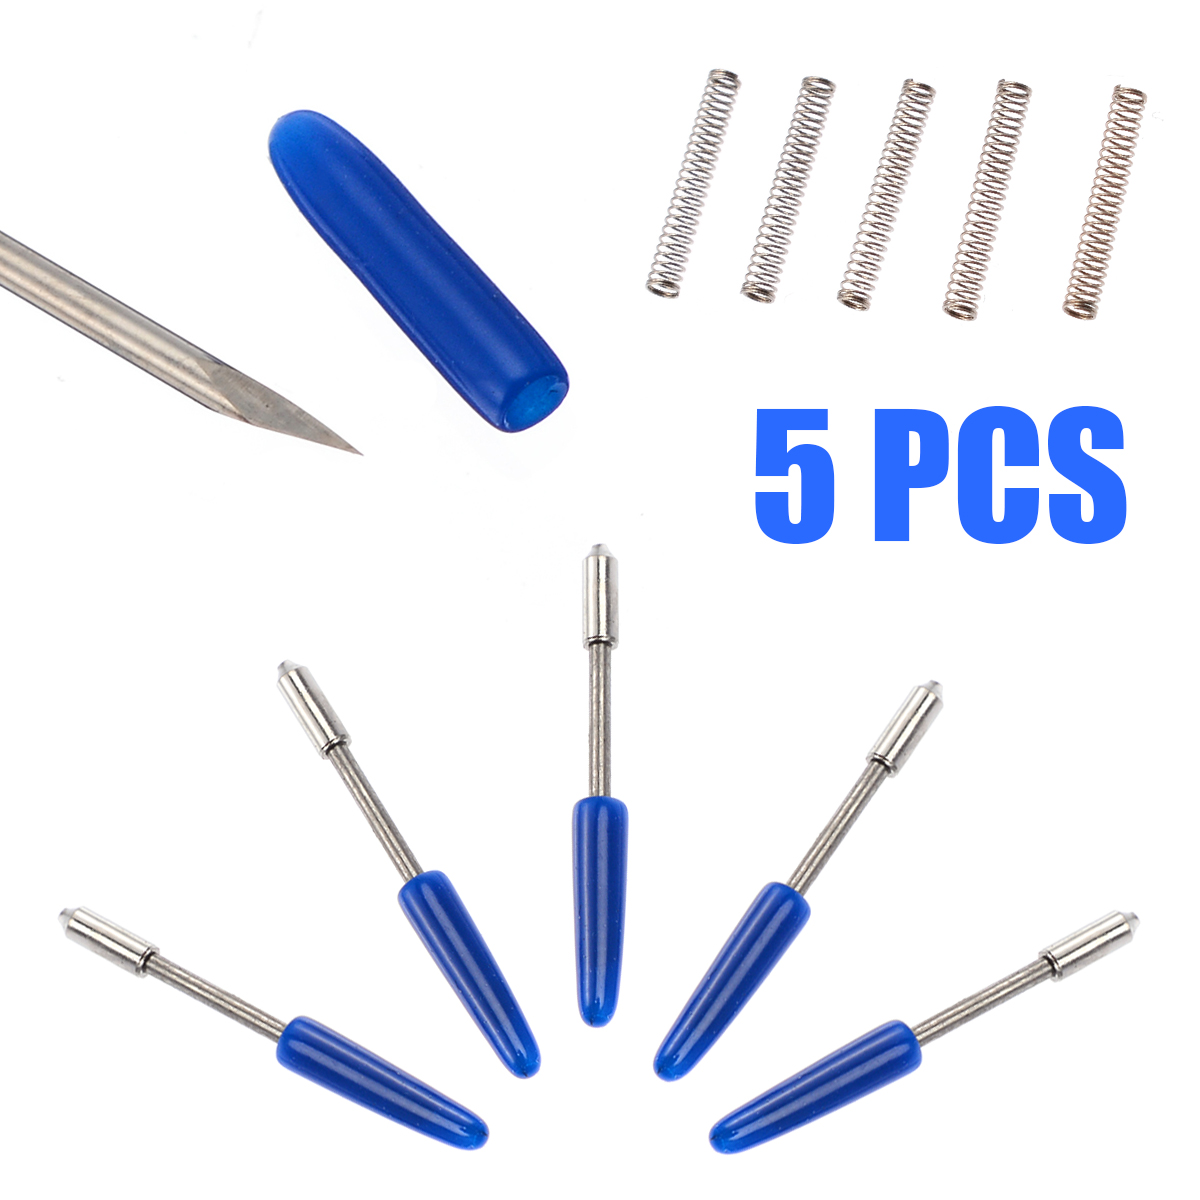 5Pcs Hard alloy 45/60 Degree Blades with 1pc CB09 Graphtec Blade Holder Set For Vinyl Plotter Cutter